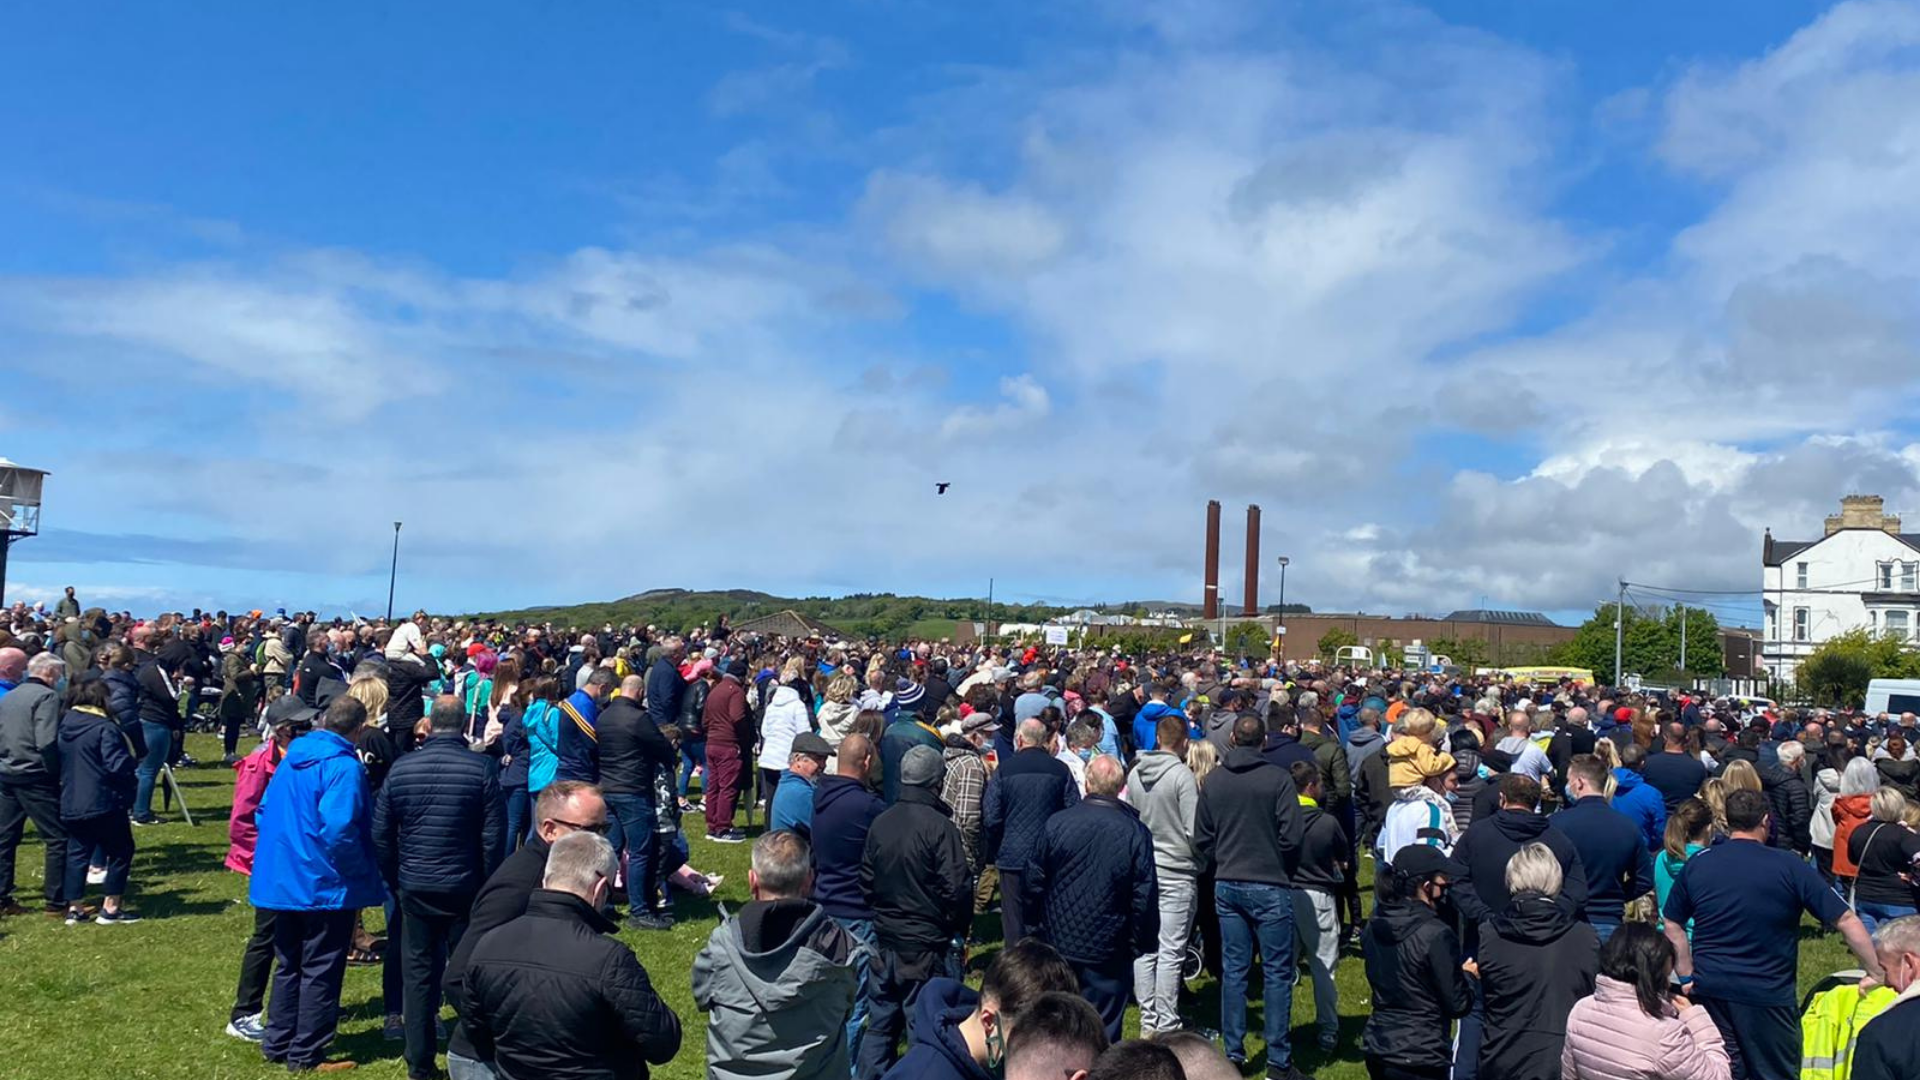 thousands gathered at Buncrana's Shore Front to protest